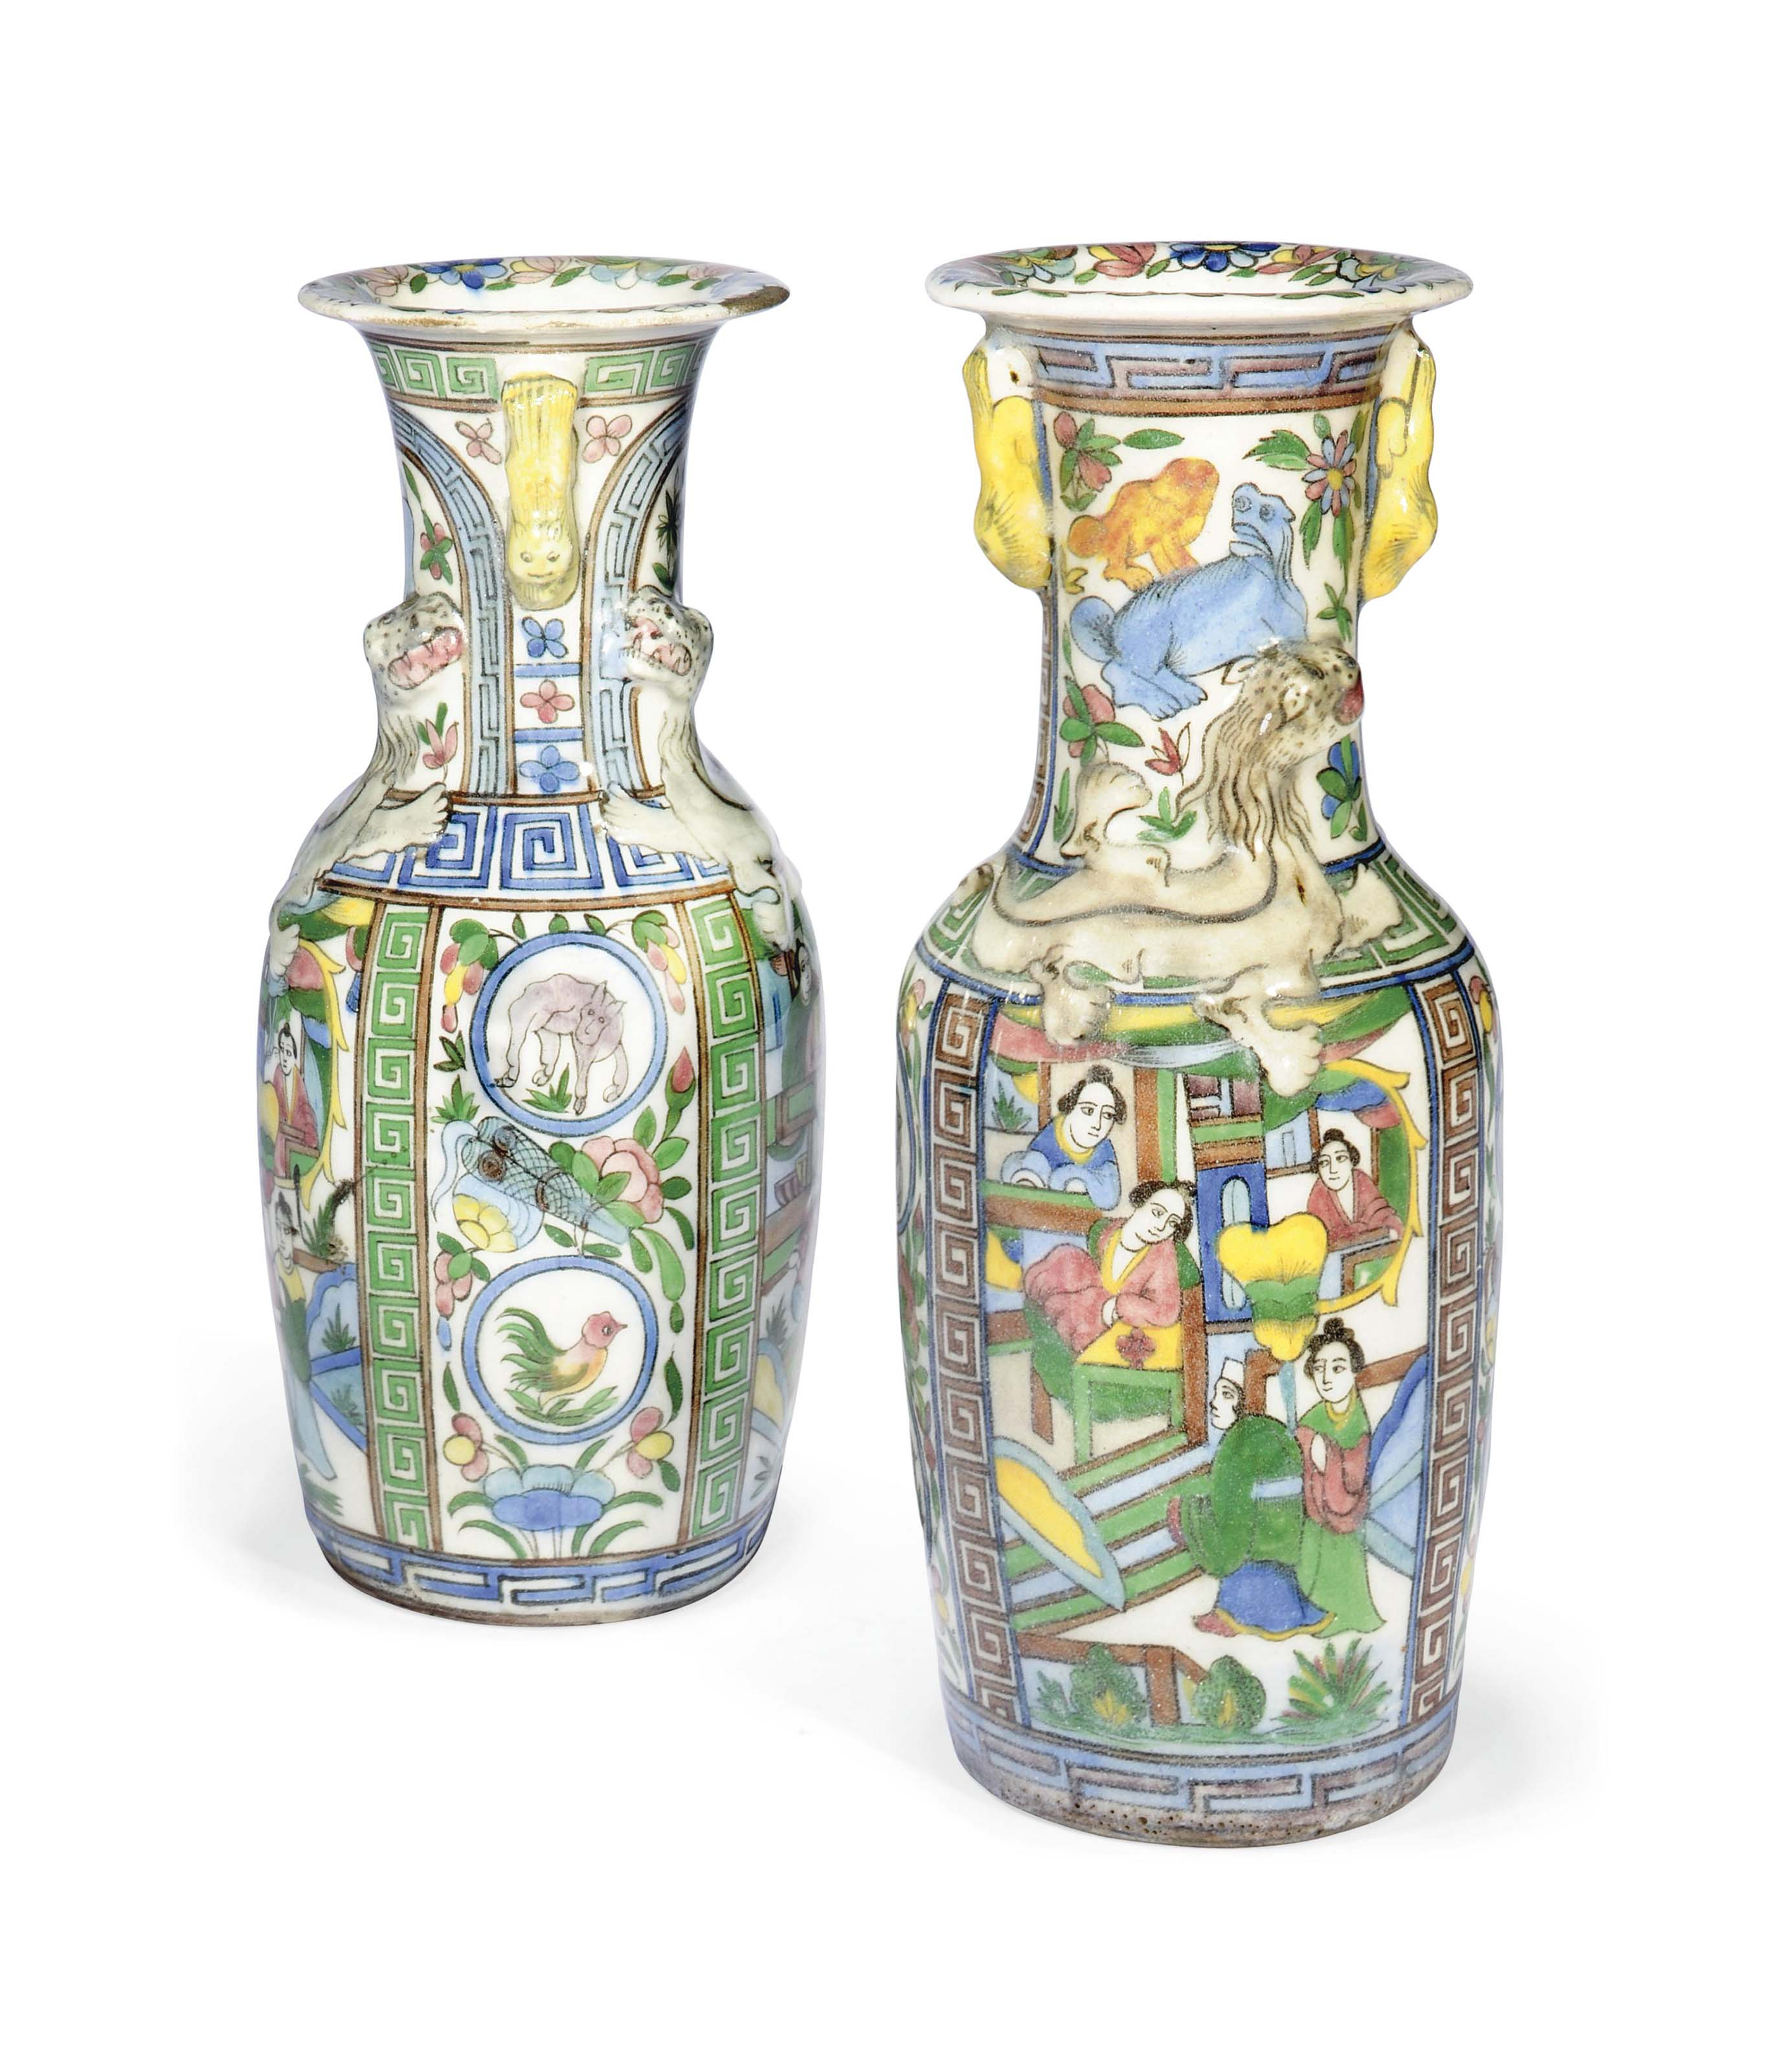 TWO QAJAR CHINESE-STYLE POTTERY VASES